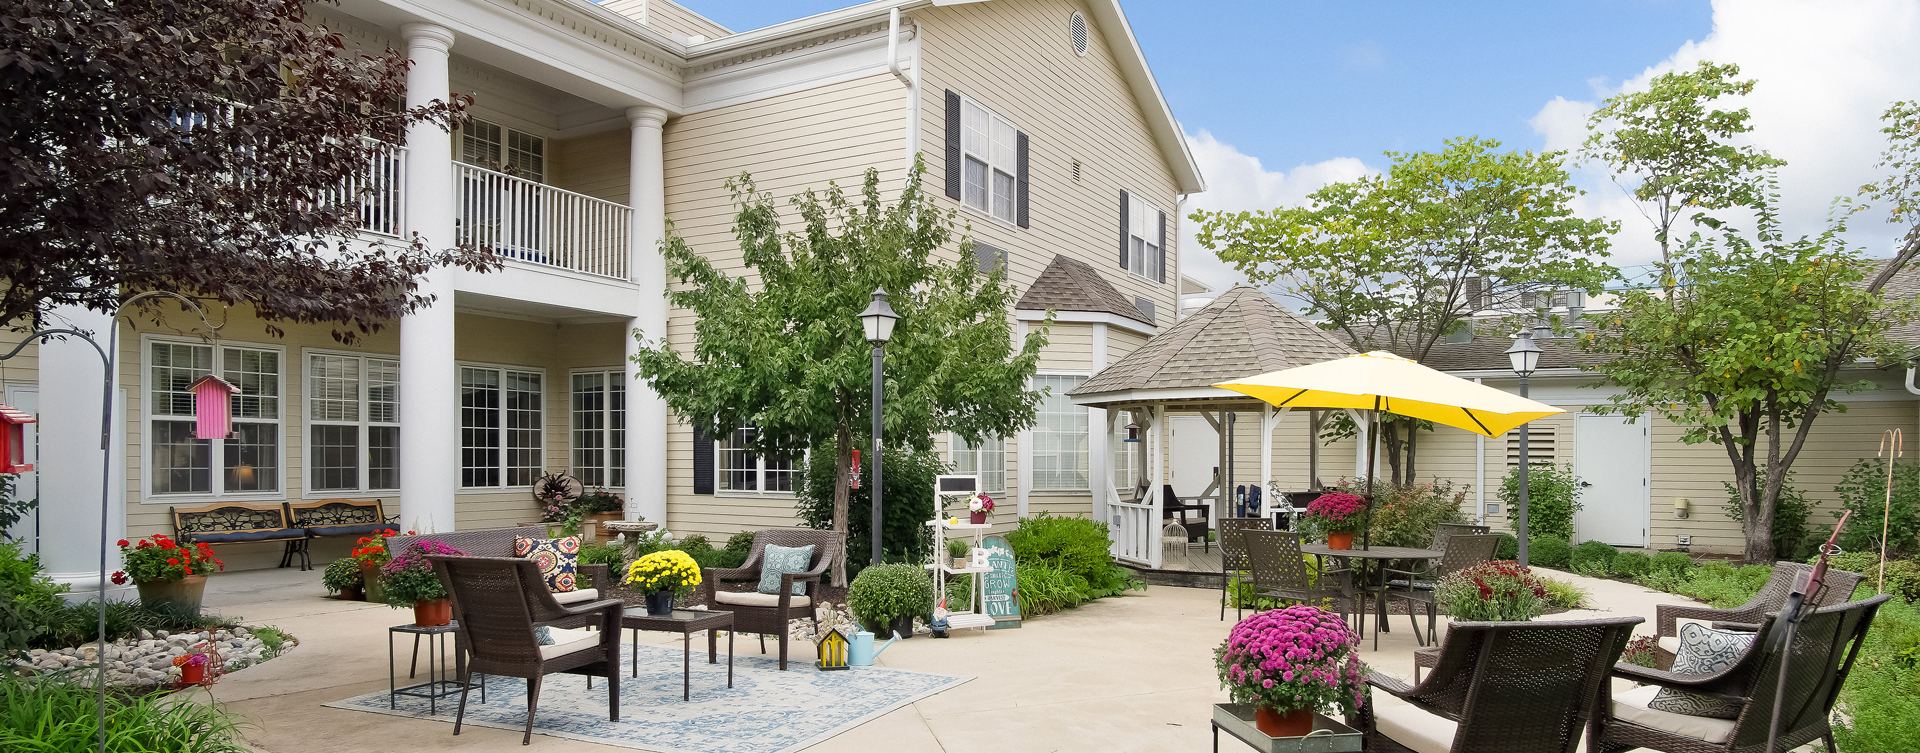 Enjoy the outdoors in a whole new light by stepping into our secure courtyard at Bickford of Overland Park